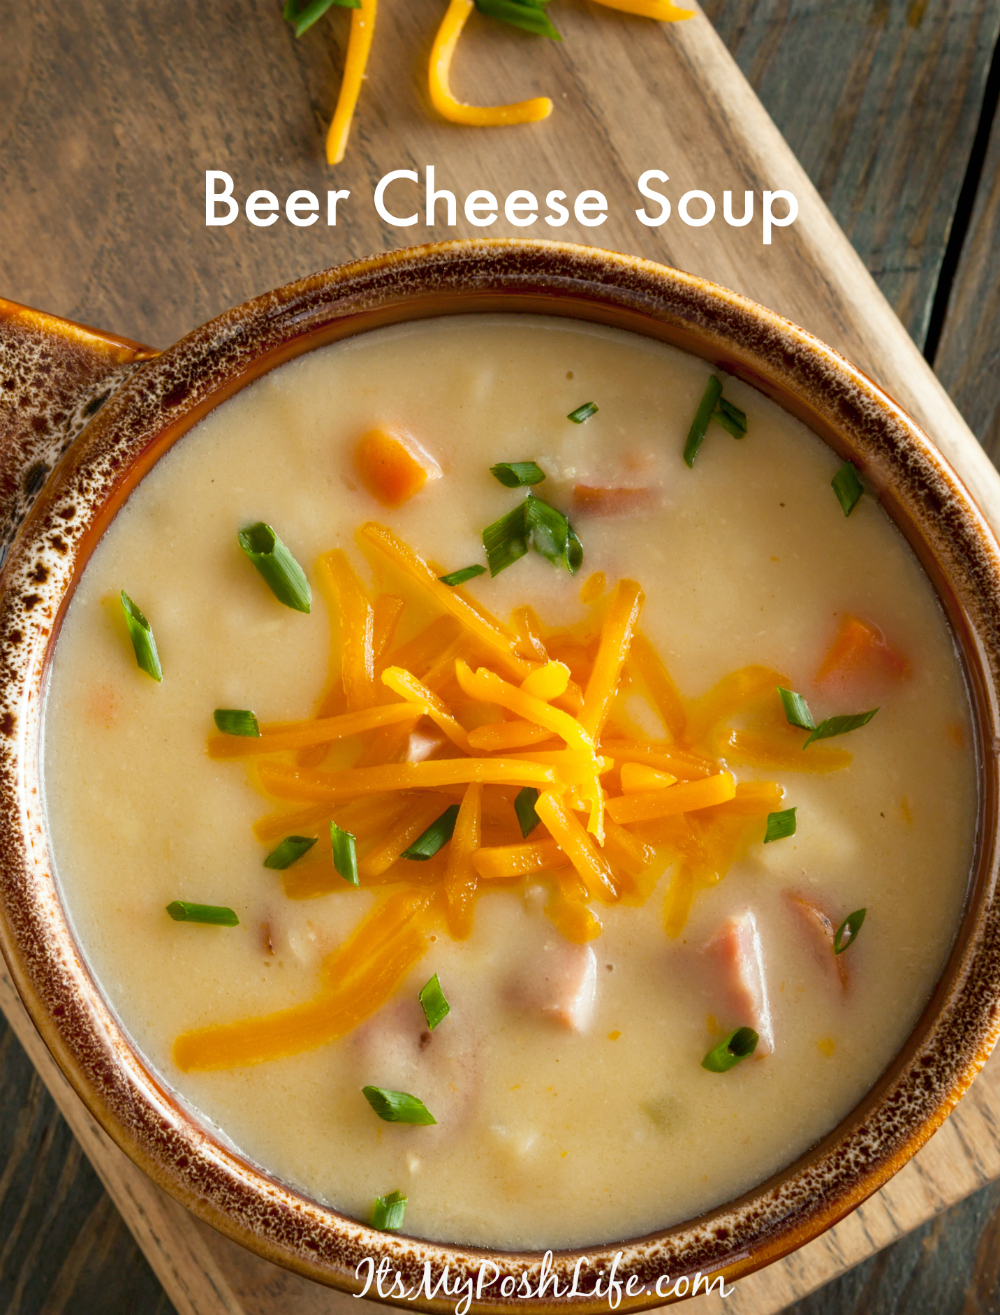 Homemade Beer Cheese Soup